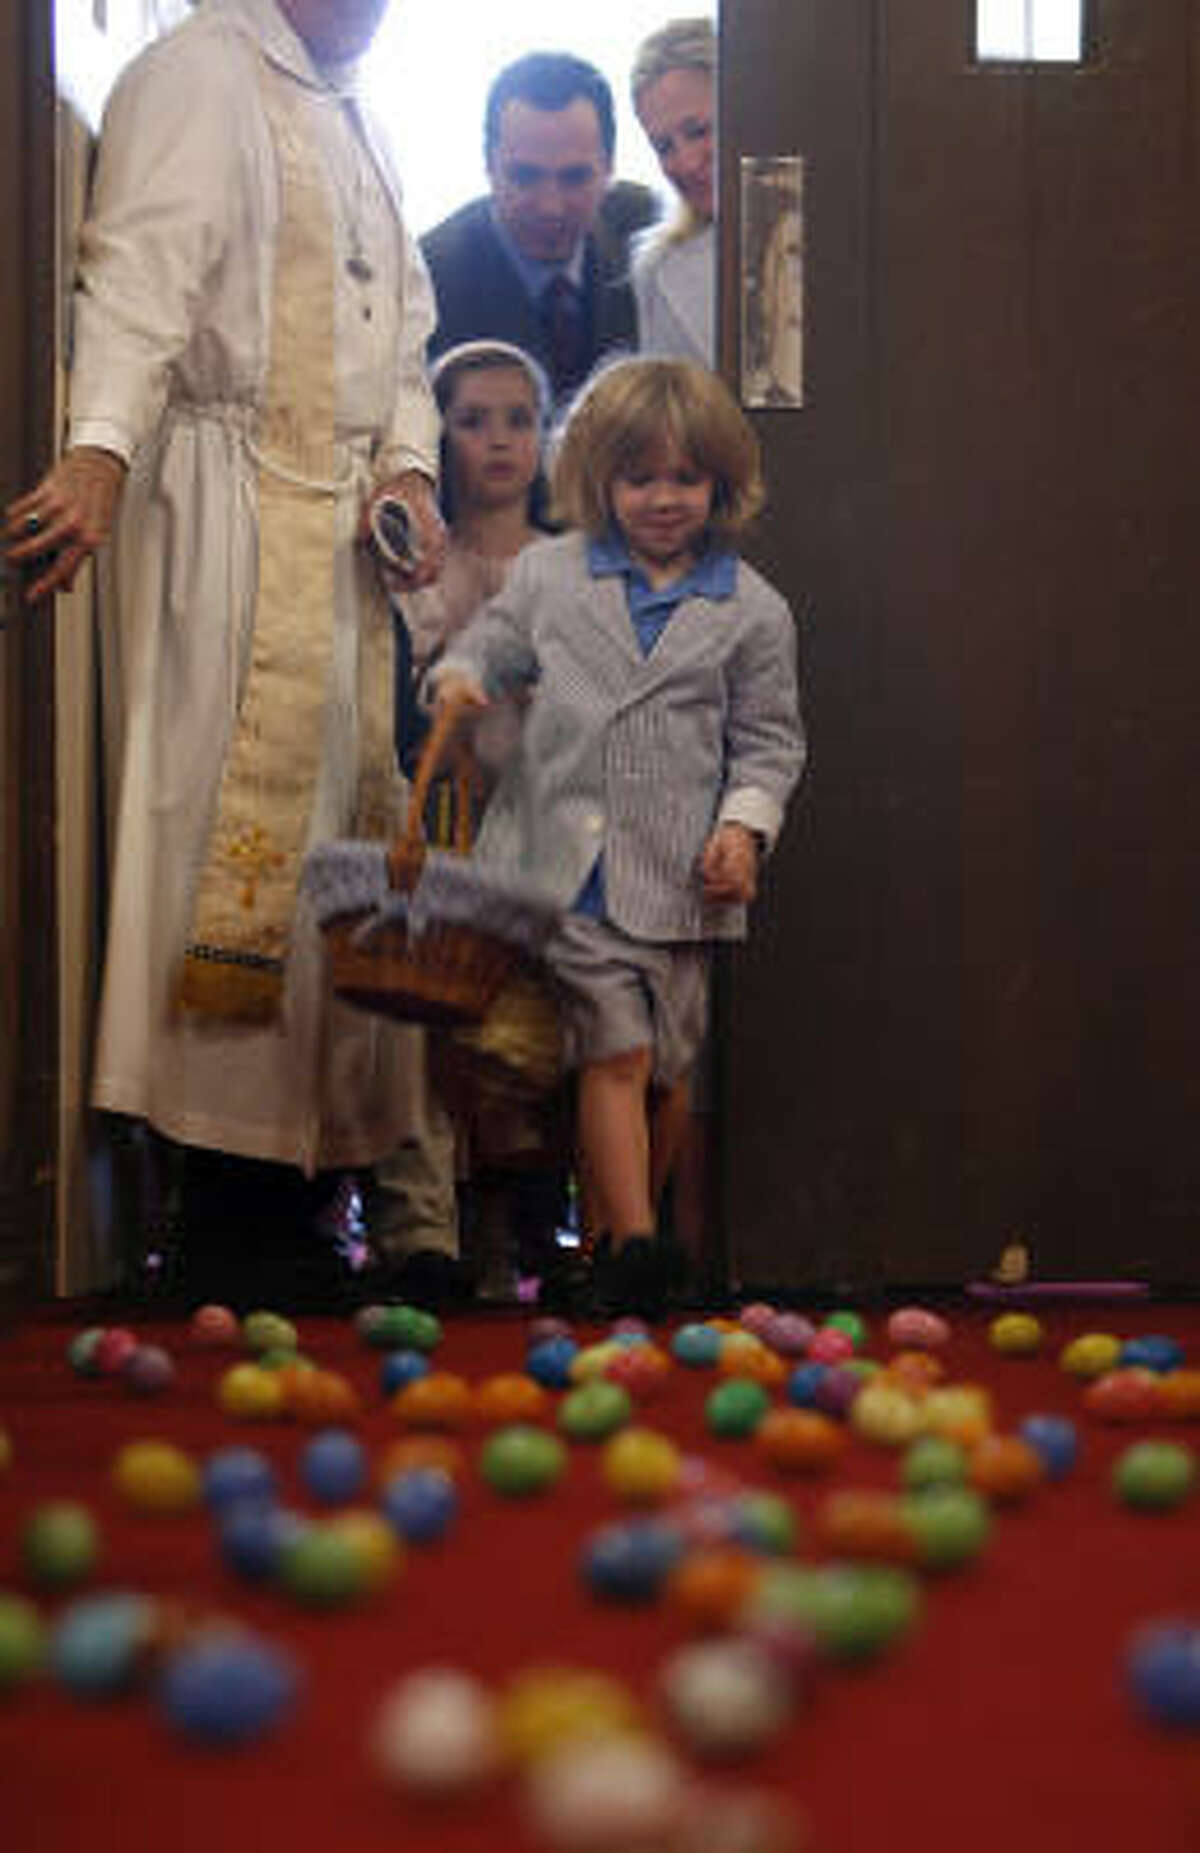 Lawson Schintler runs into the chapel for the Easter egg hunt after attending a service at The Church of St. John the Divine. The egg hunt was held indoors because of rainy weather.